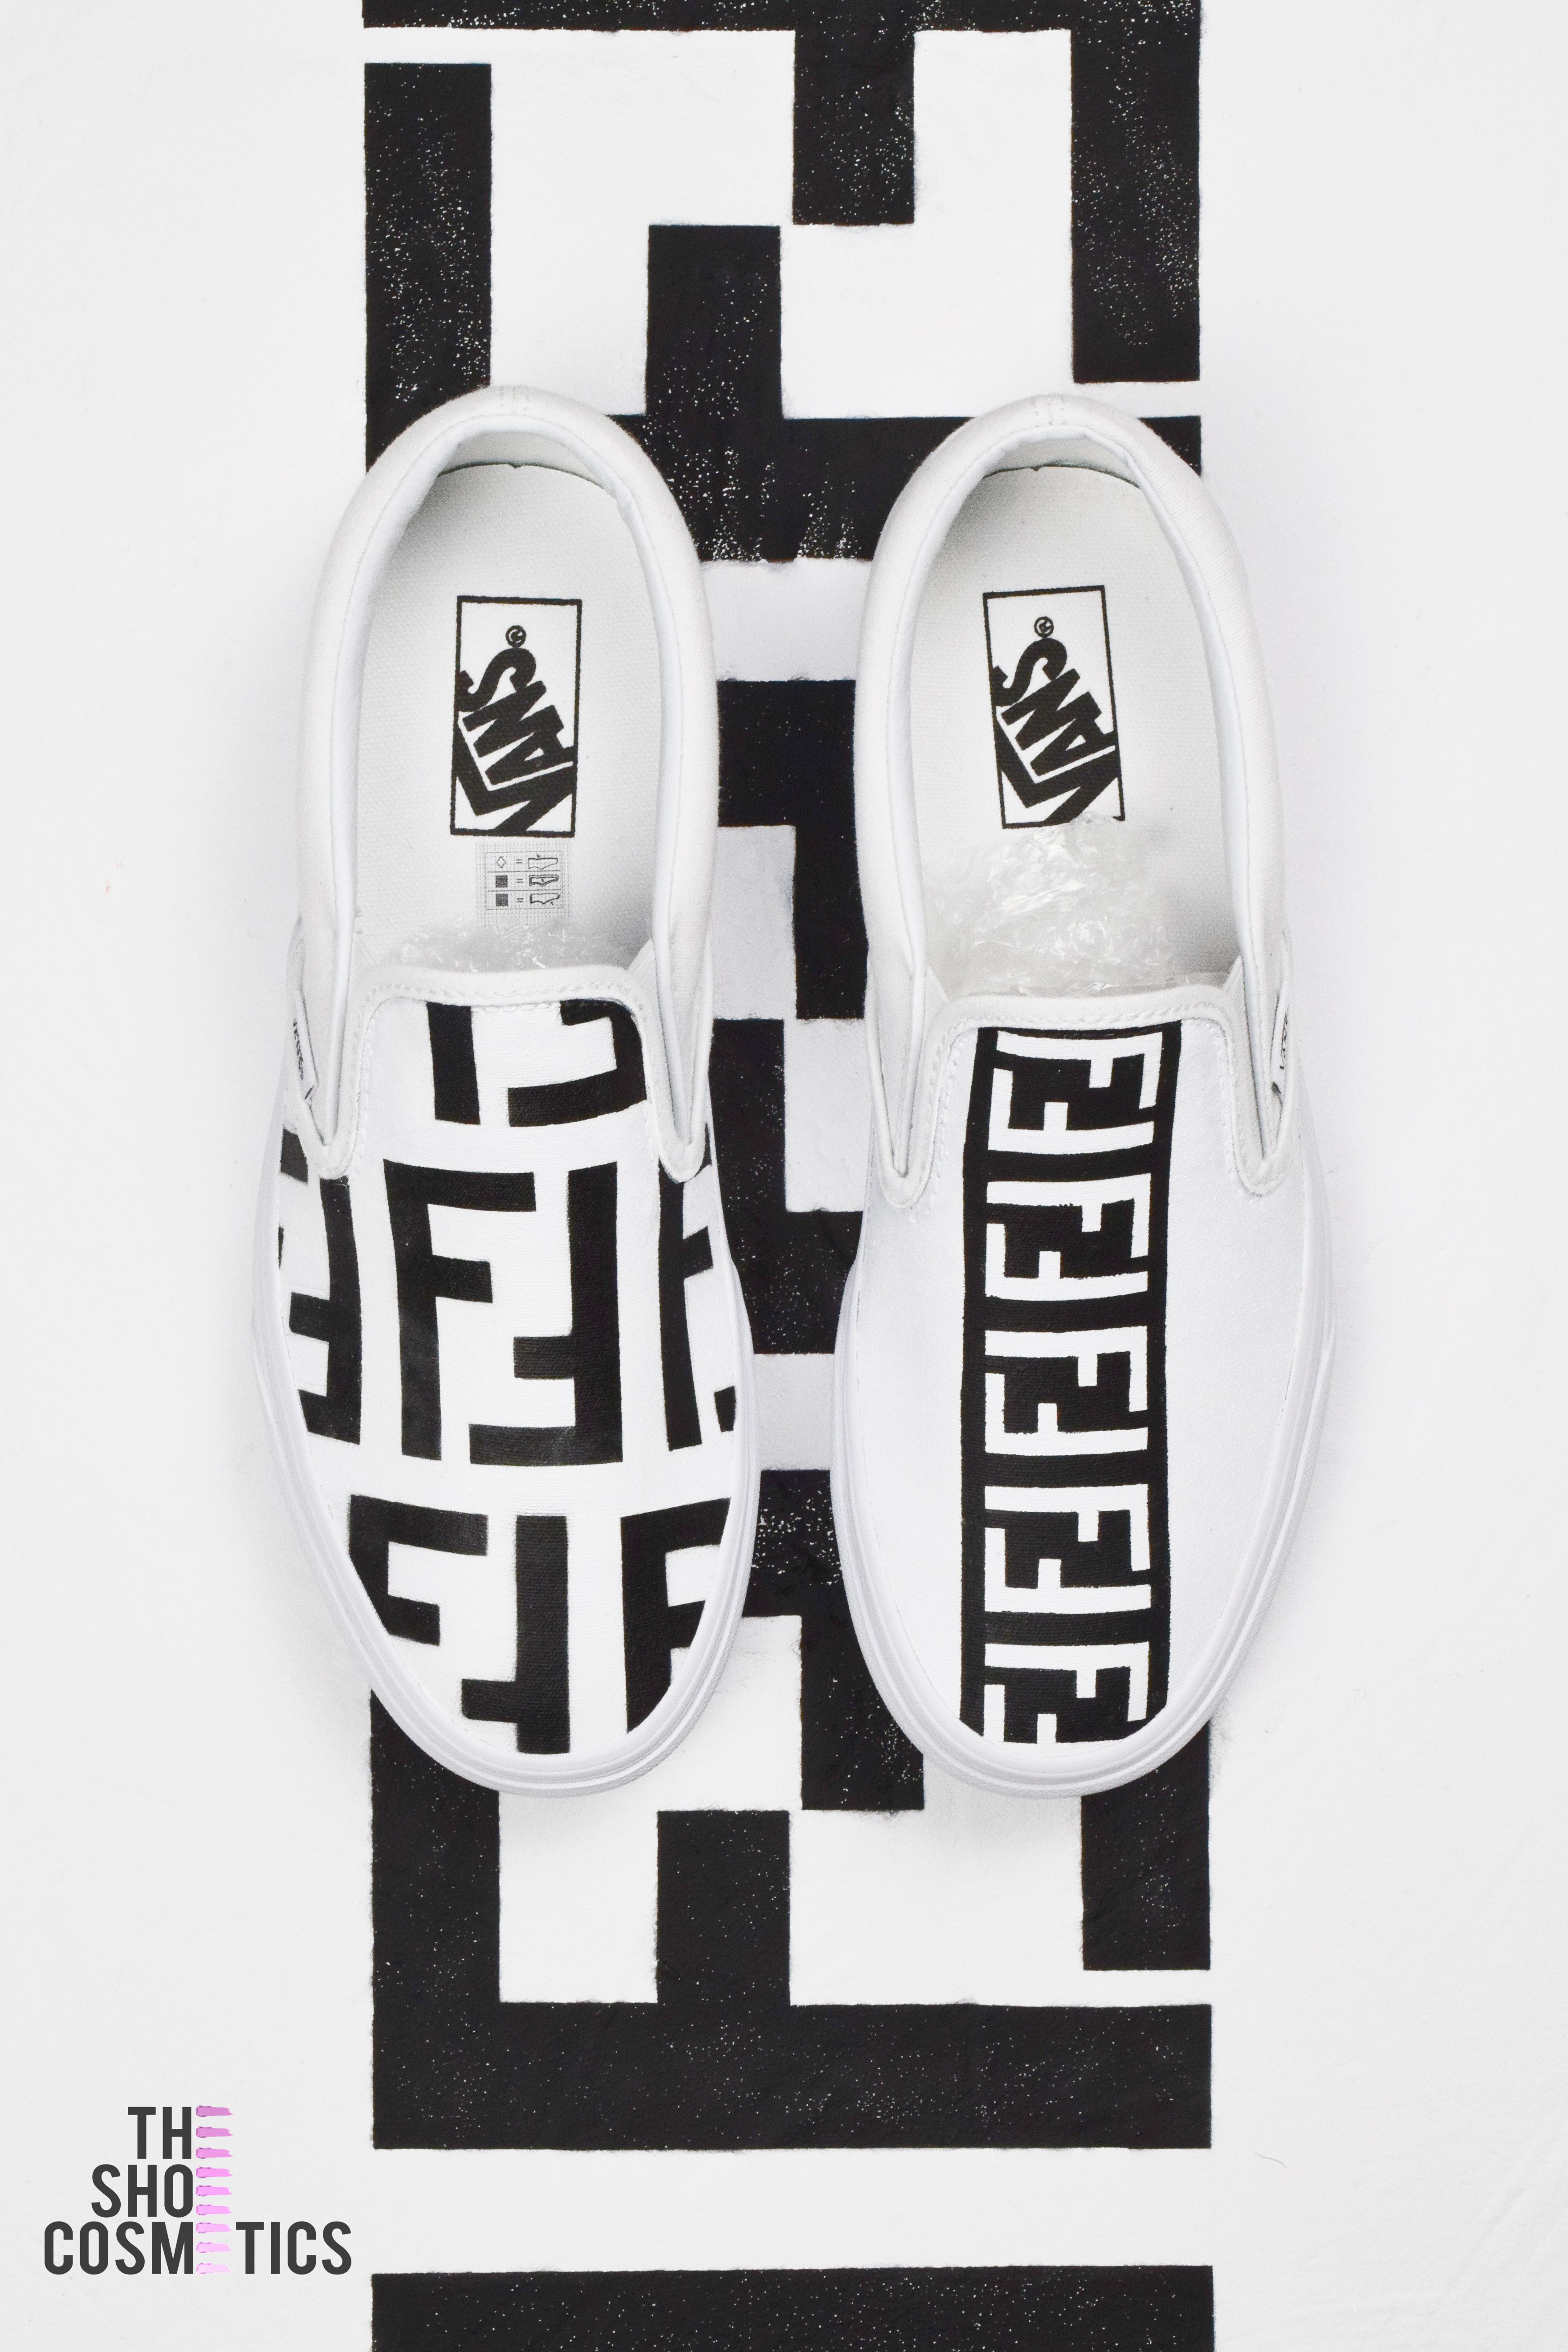 61310a63ce5f2b Explore our new black and white fendi vans slip on custom sneakers. Looking  for slip on vans or custom vans  Then our new fendi print hand painted  sneakers ...